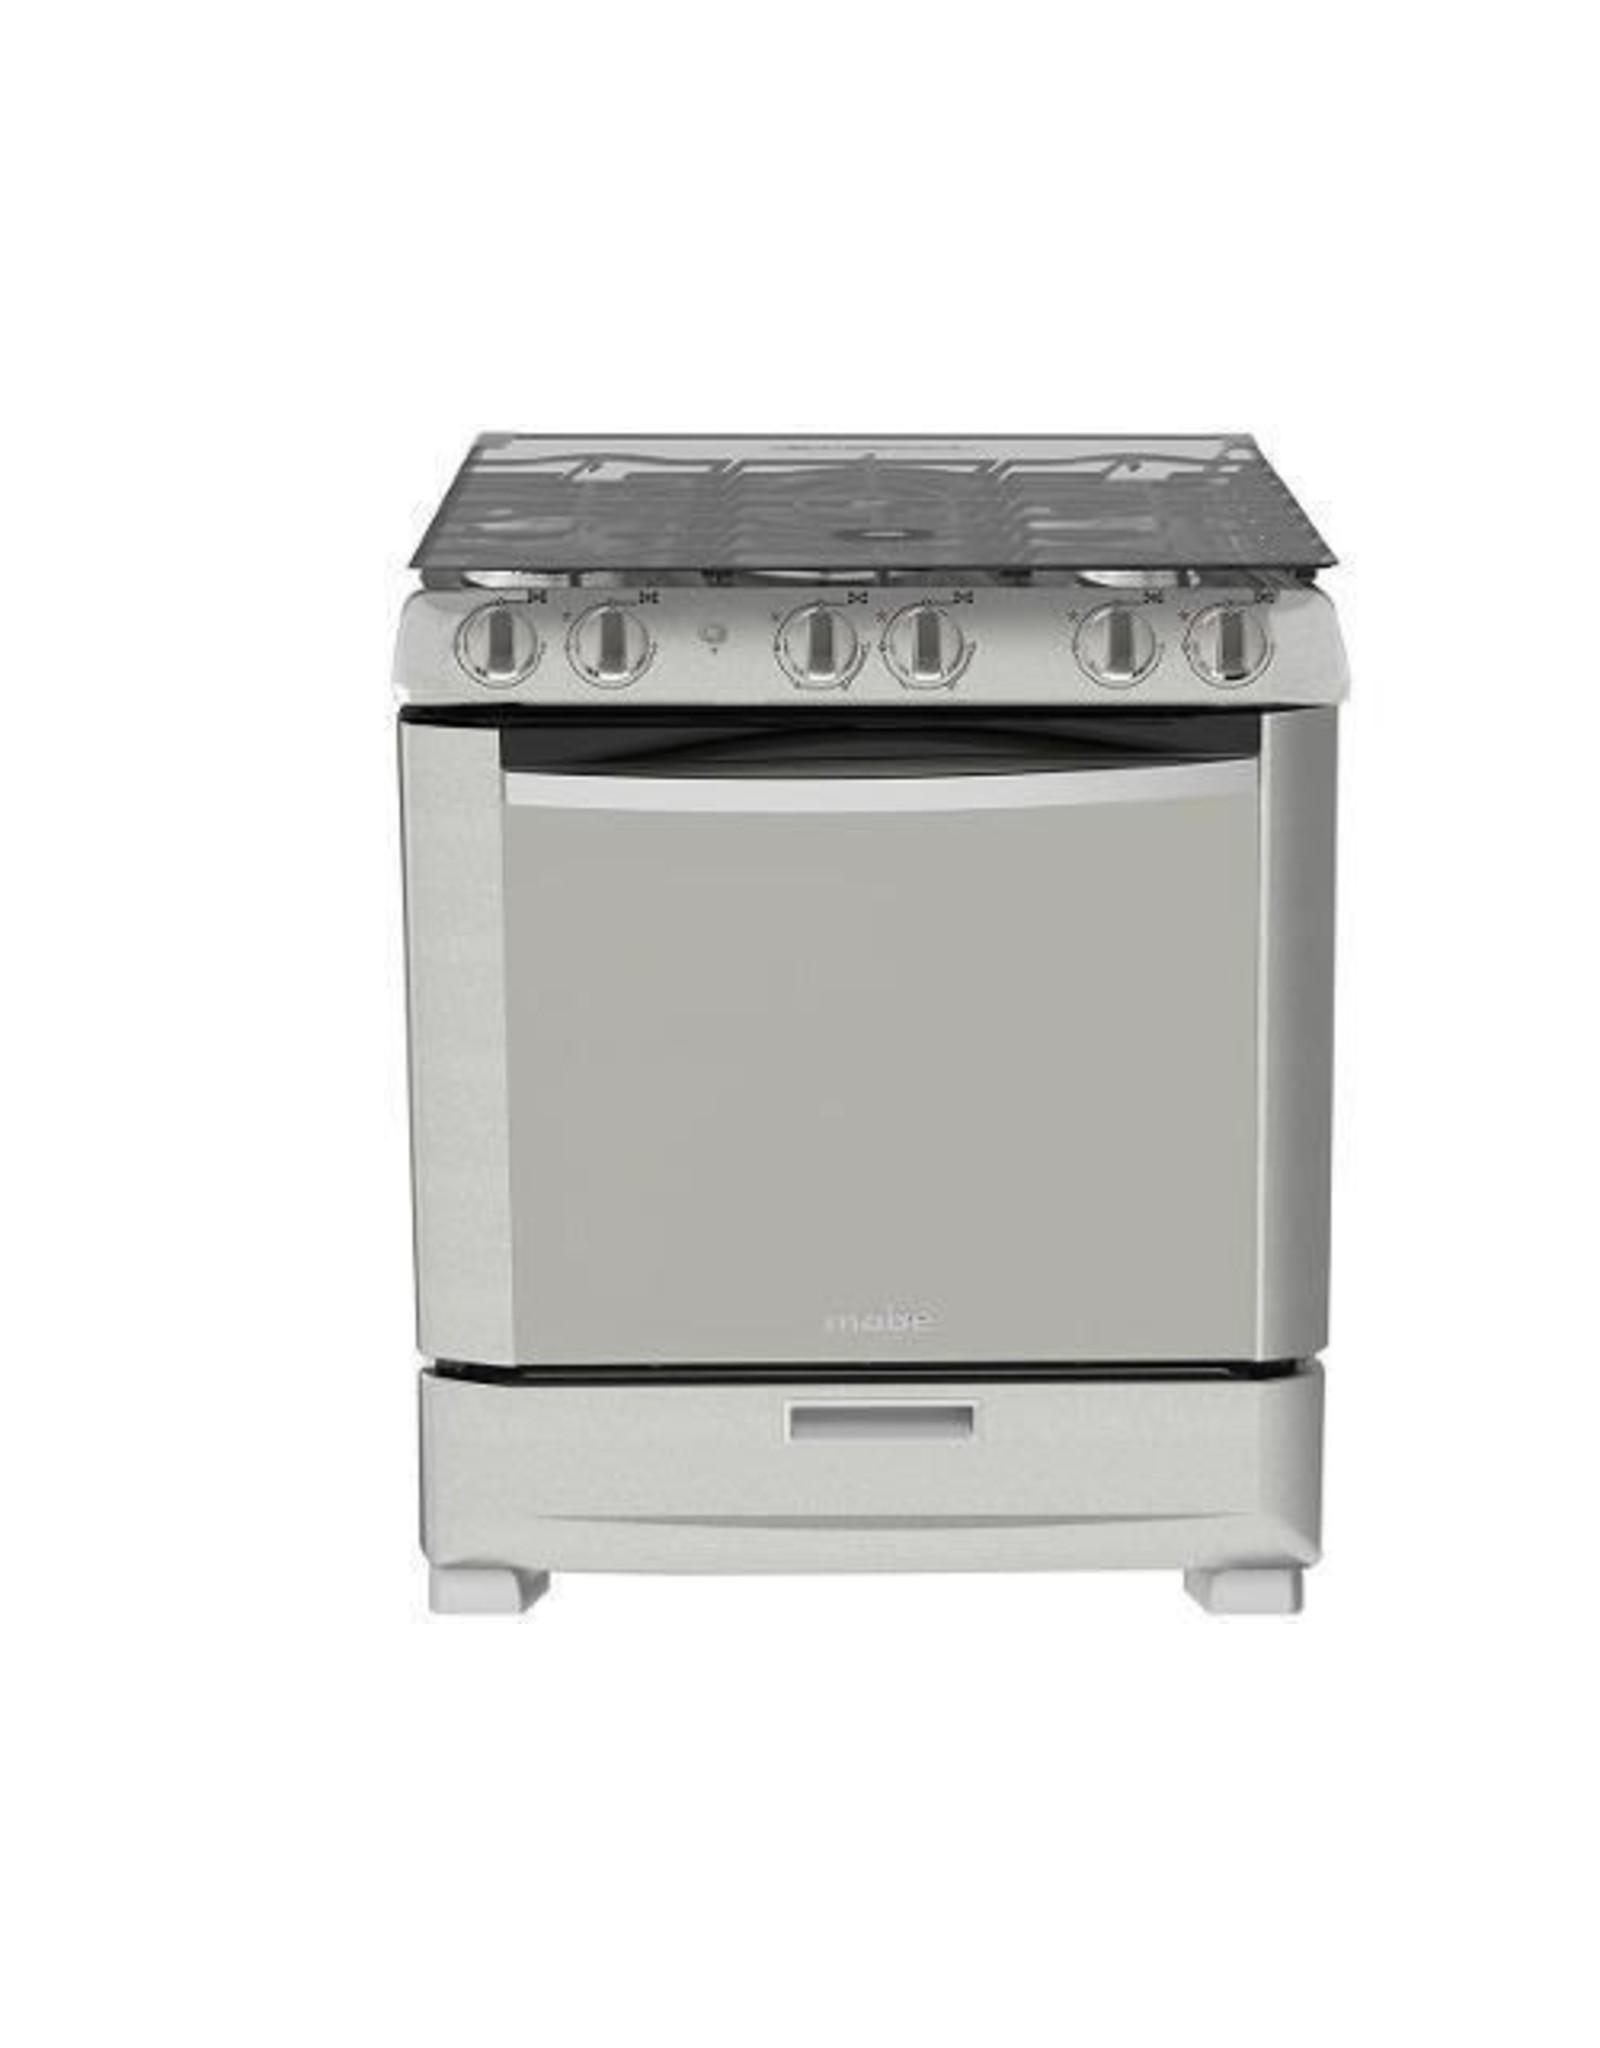 "Mabe Mabe Stove 30"" s/steel w/broiler w/cover EM7672MSCFX0"